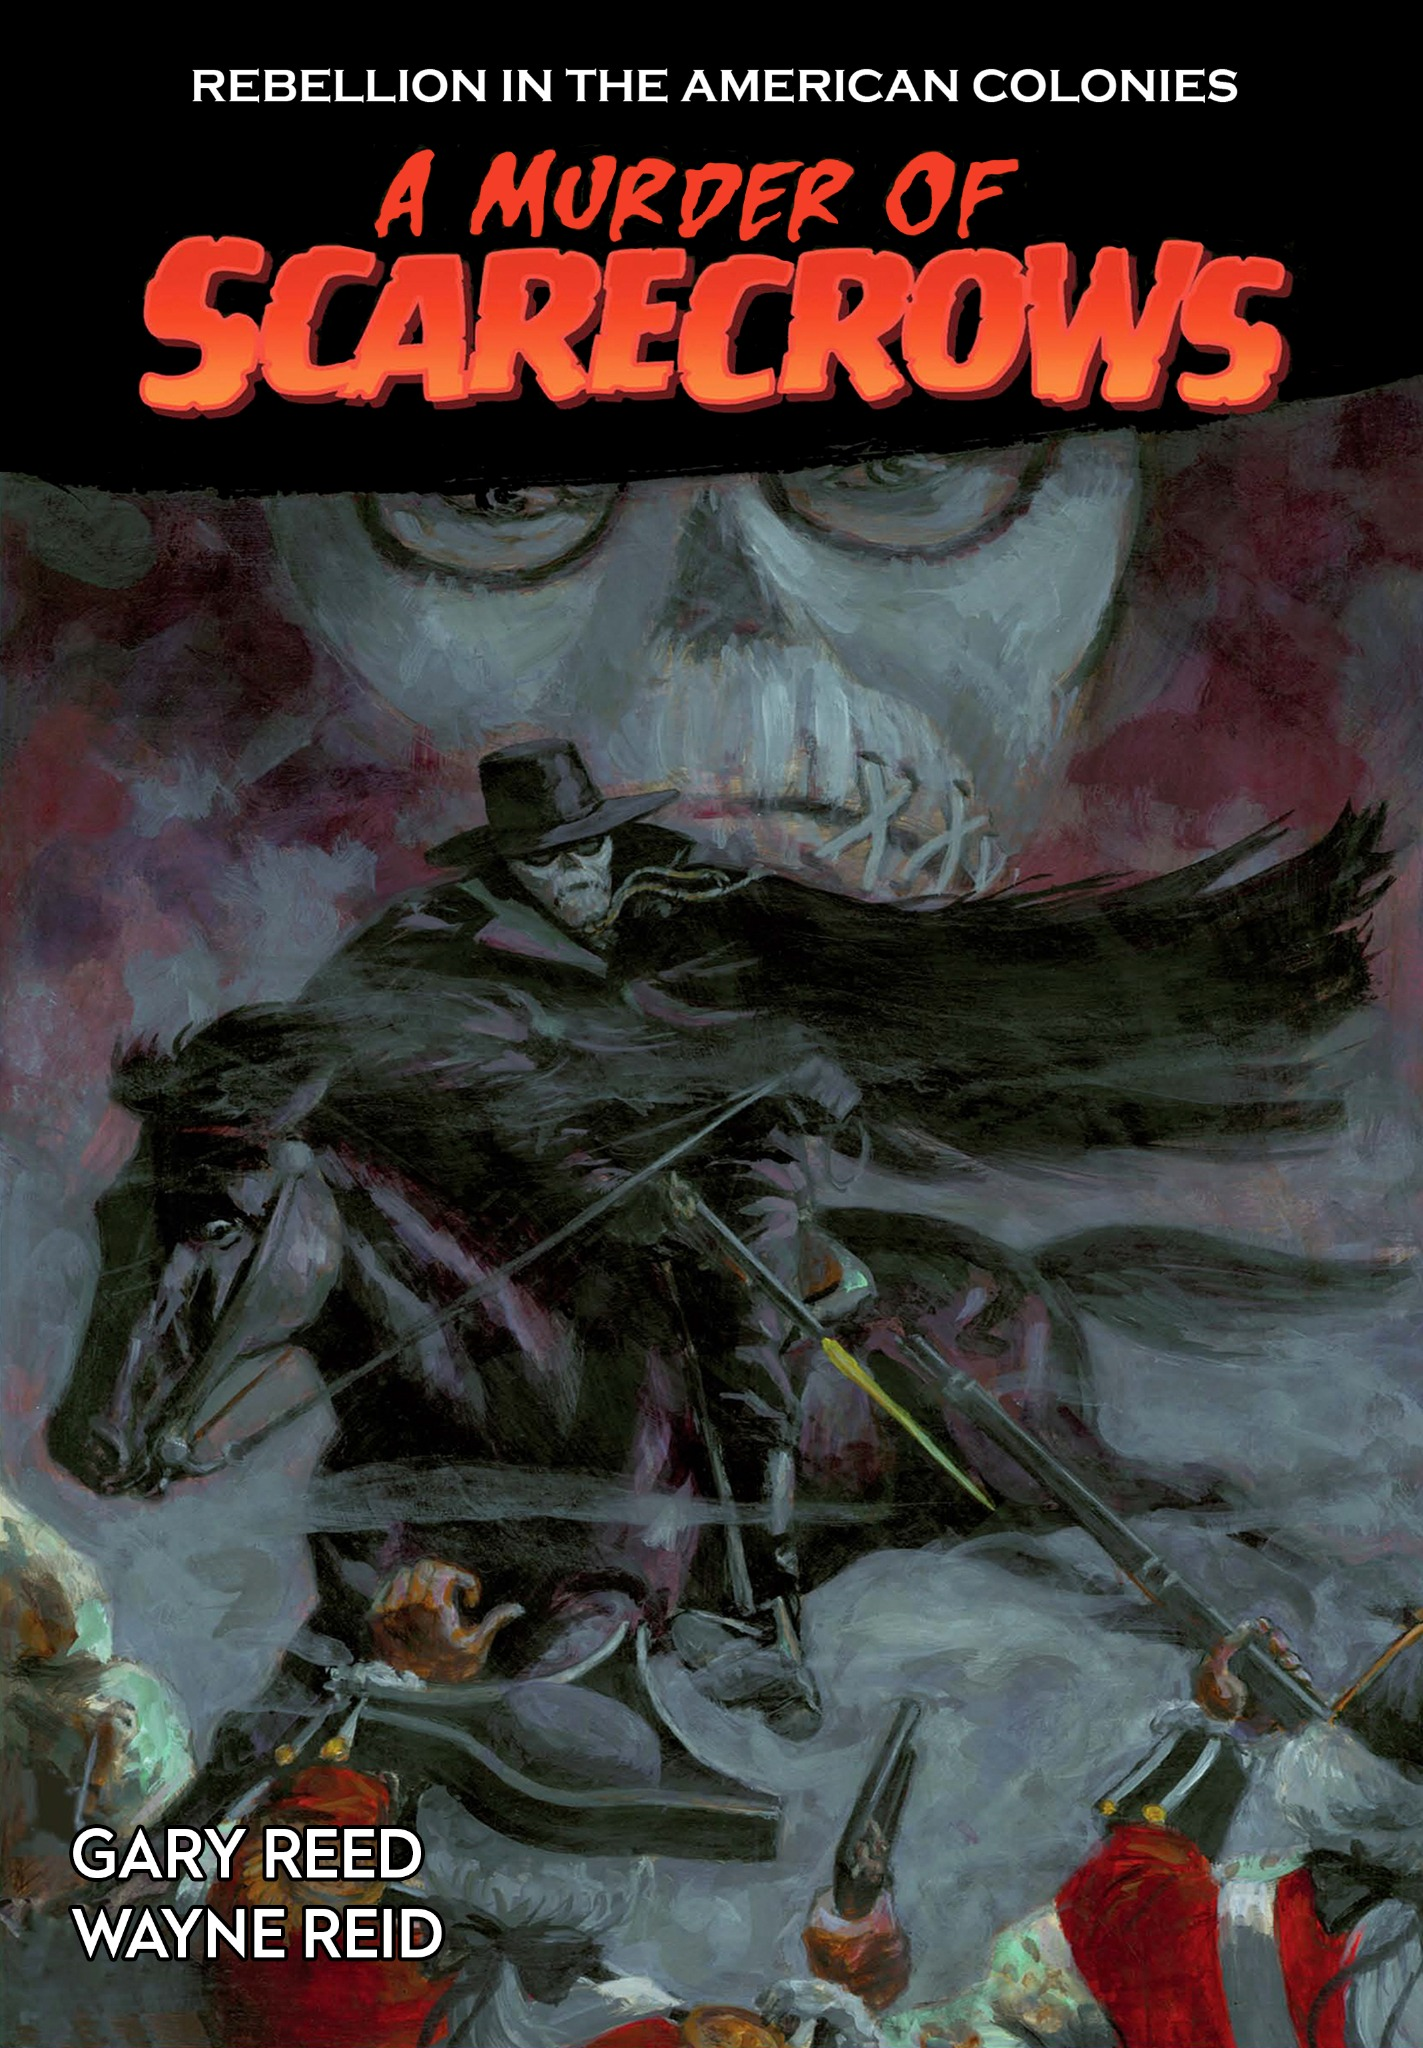 A Murder of Scarecrows: Rebellion in the American Colonies